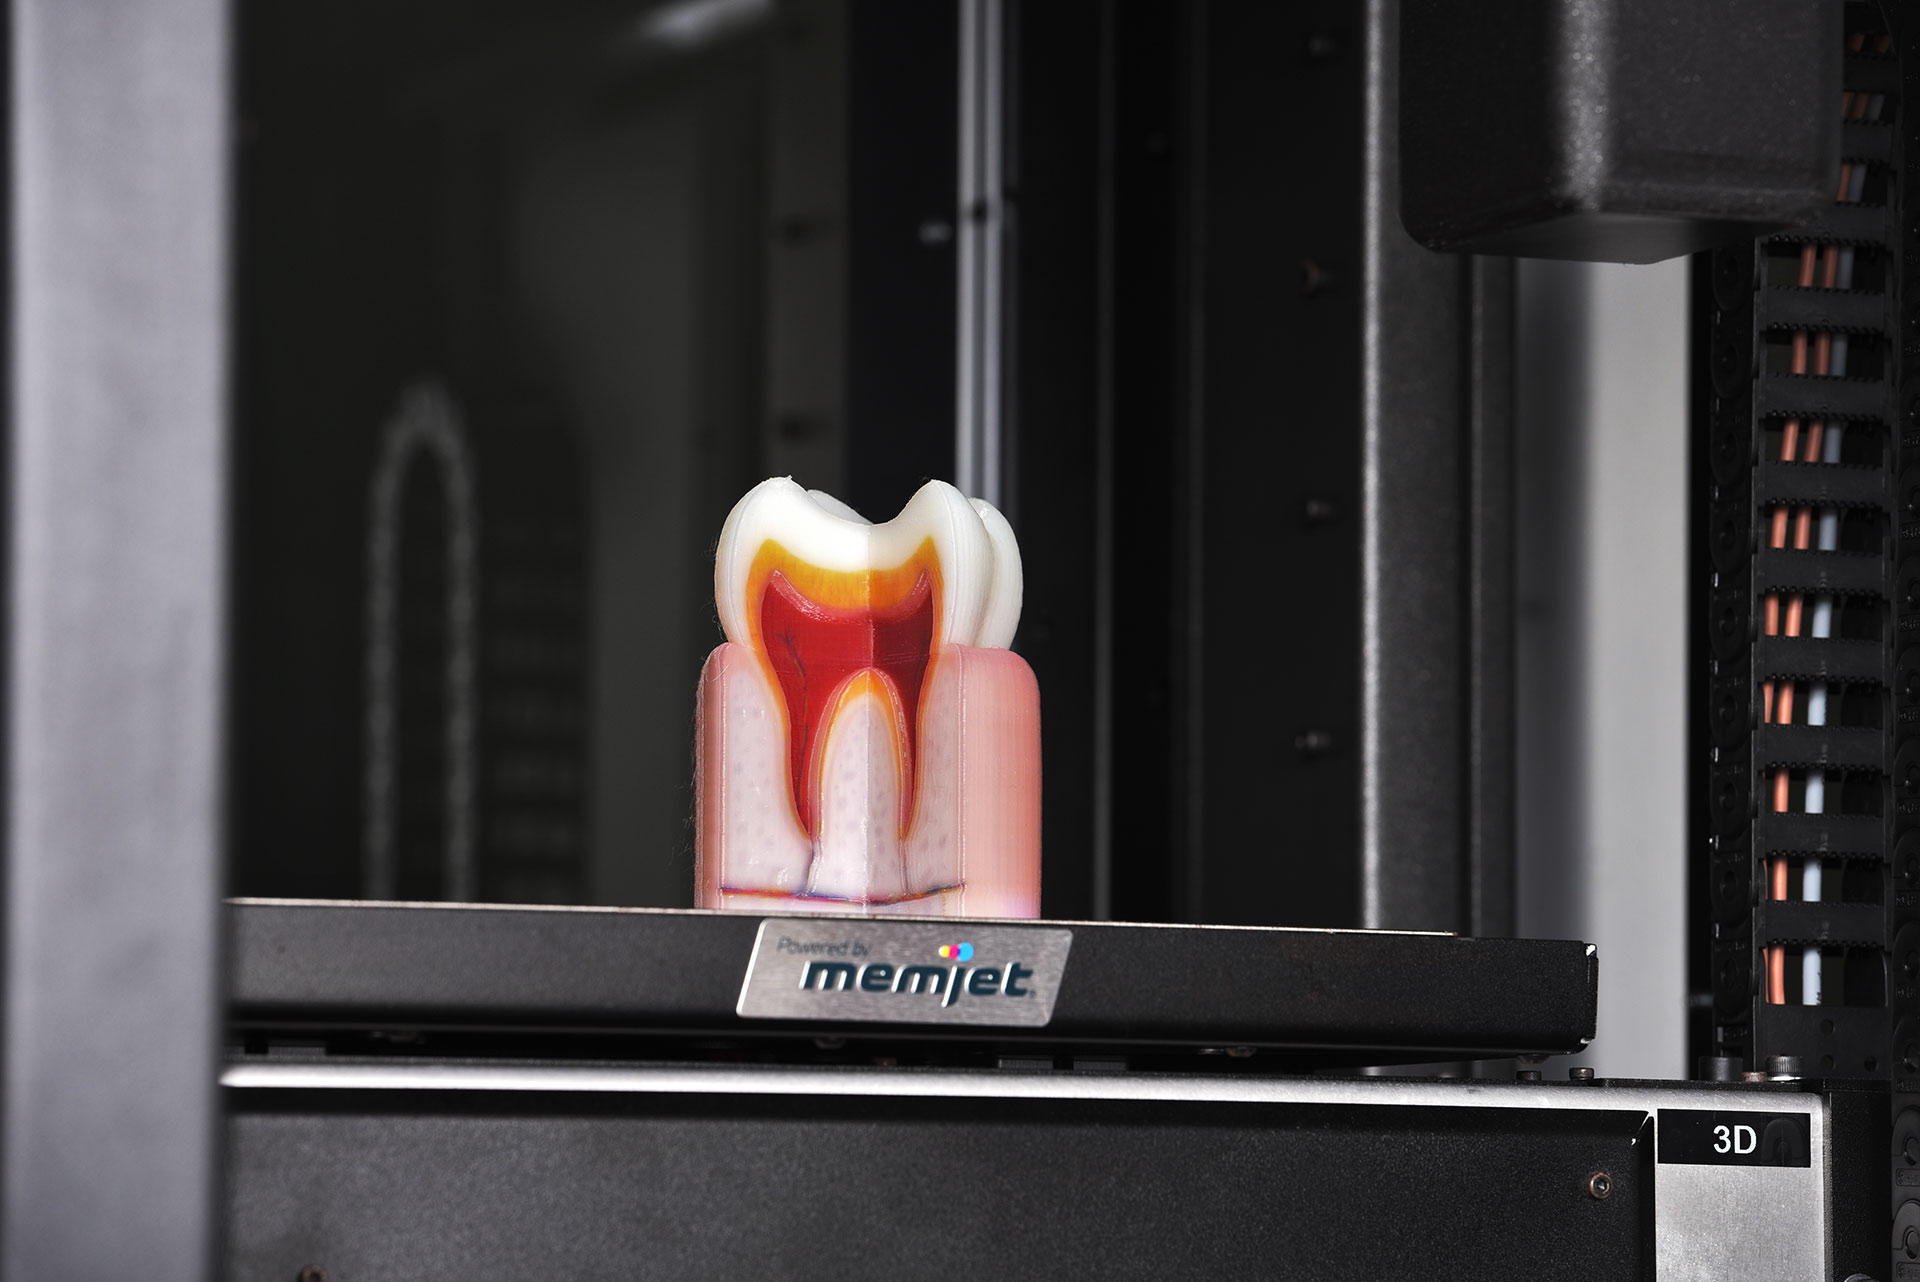 A tooth model on the OVE 3D printer printbed. Photo via OVE.